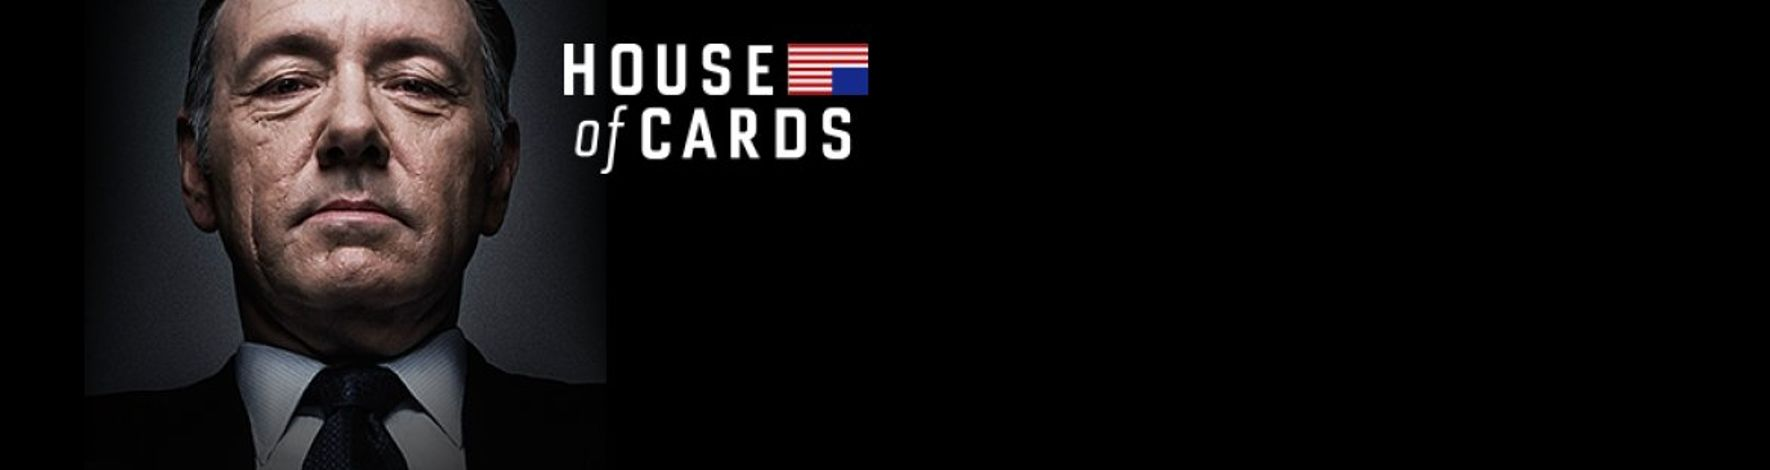 House of Cards: Assista a série no Paramount Channel